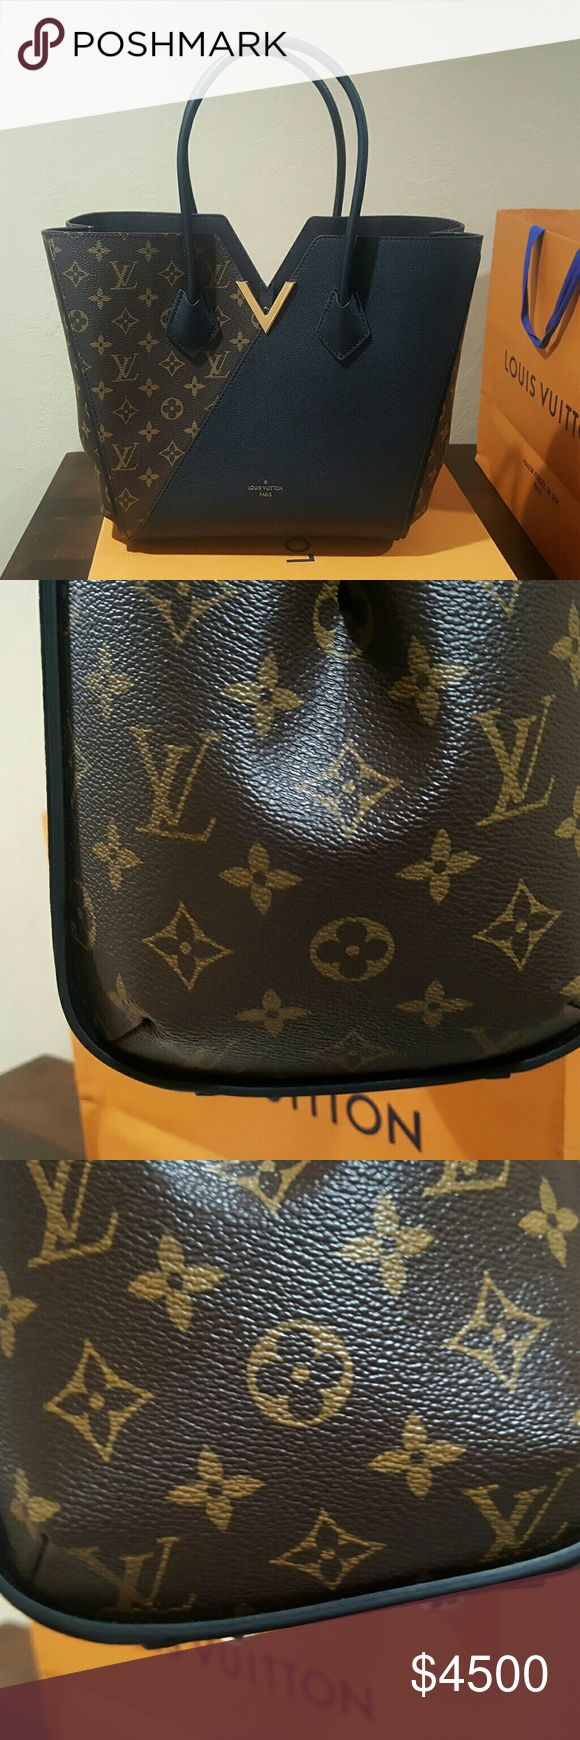 Louis Vuitton Kimono BRAND NEW LOUIS VUITTON KIMONO WITH BOX AND DUST BAG BOUGHT IN PARIS 4.22.17 MADE IN FRENCH NEVER USED SOLD OUT IN THE USA AND CANADA Louis Vuitton Bags Totes